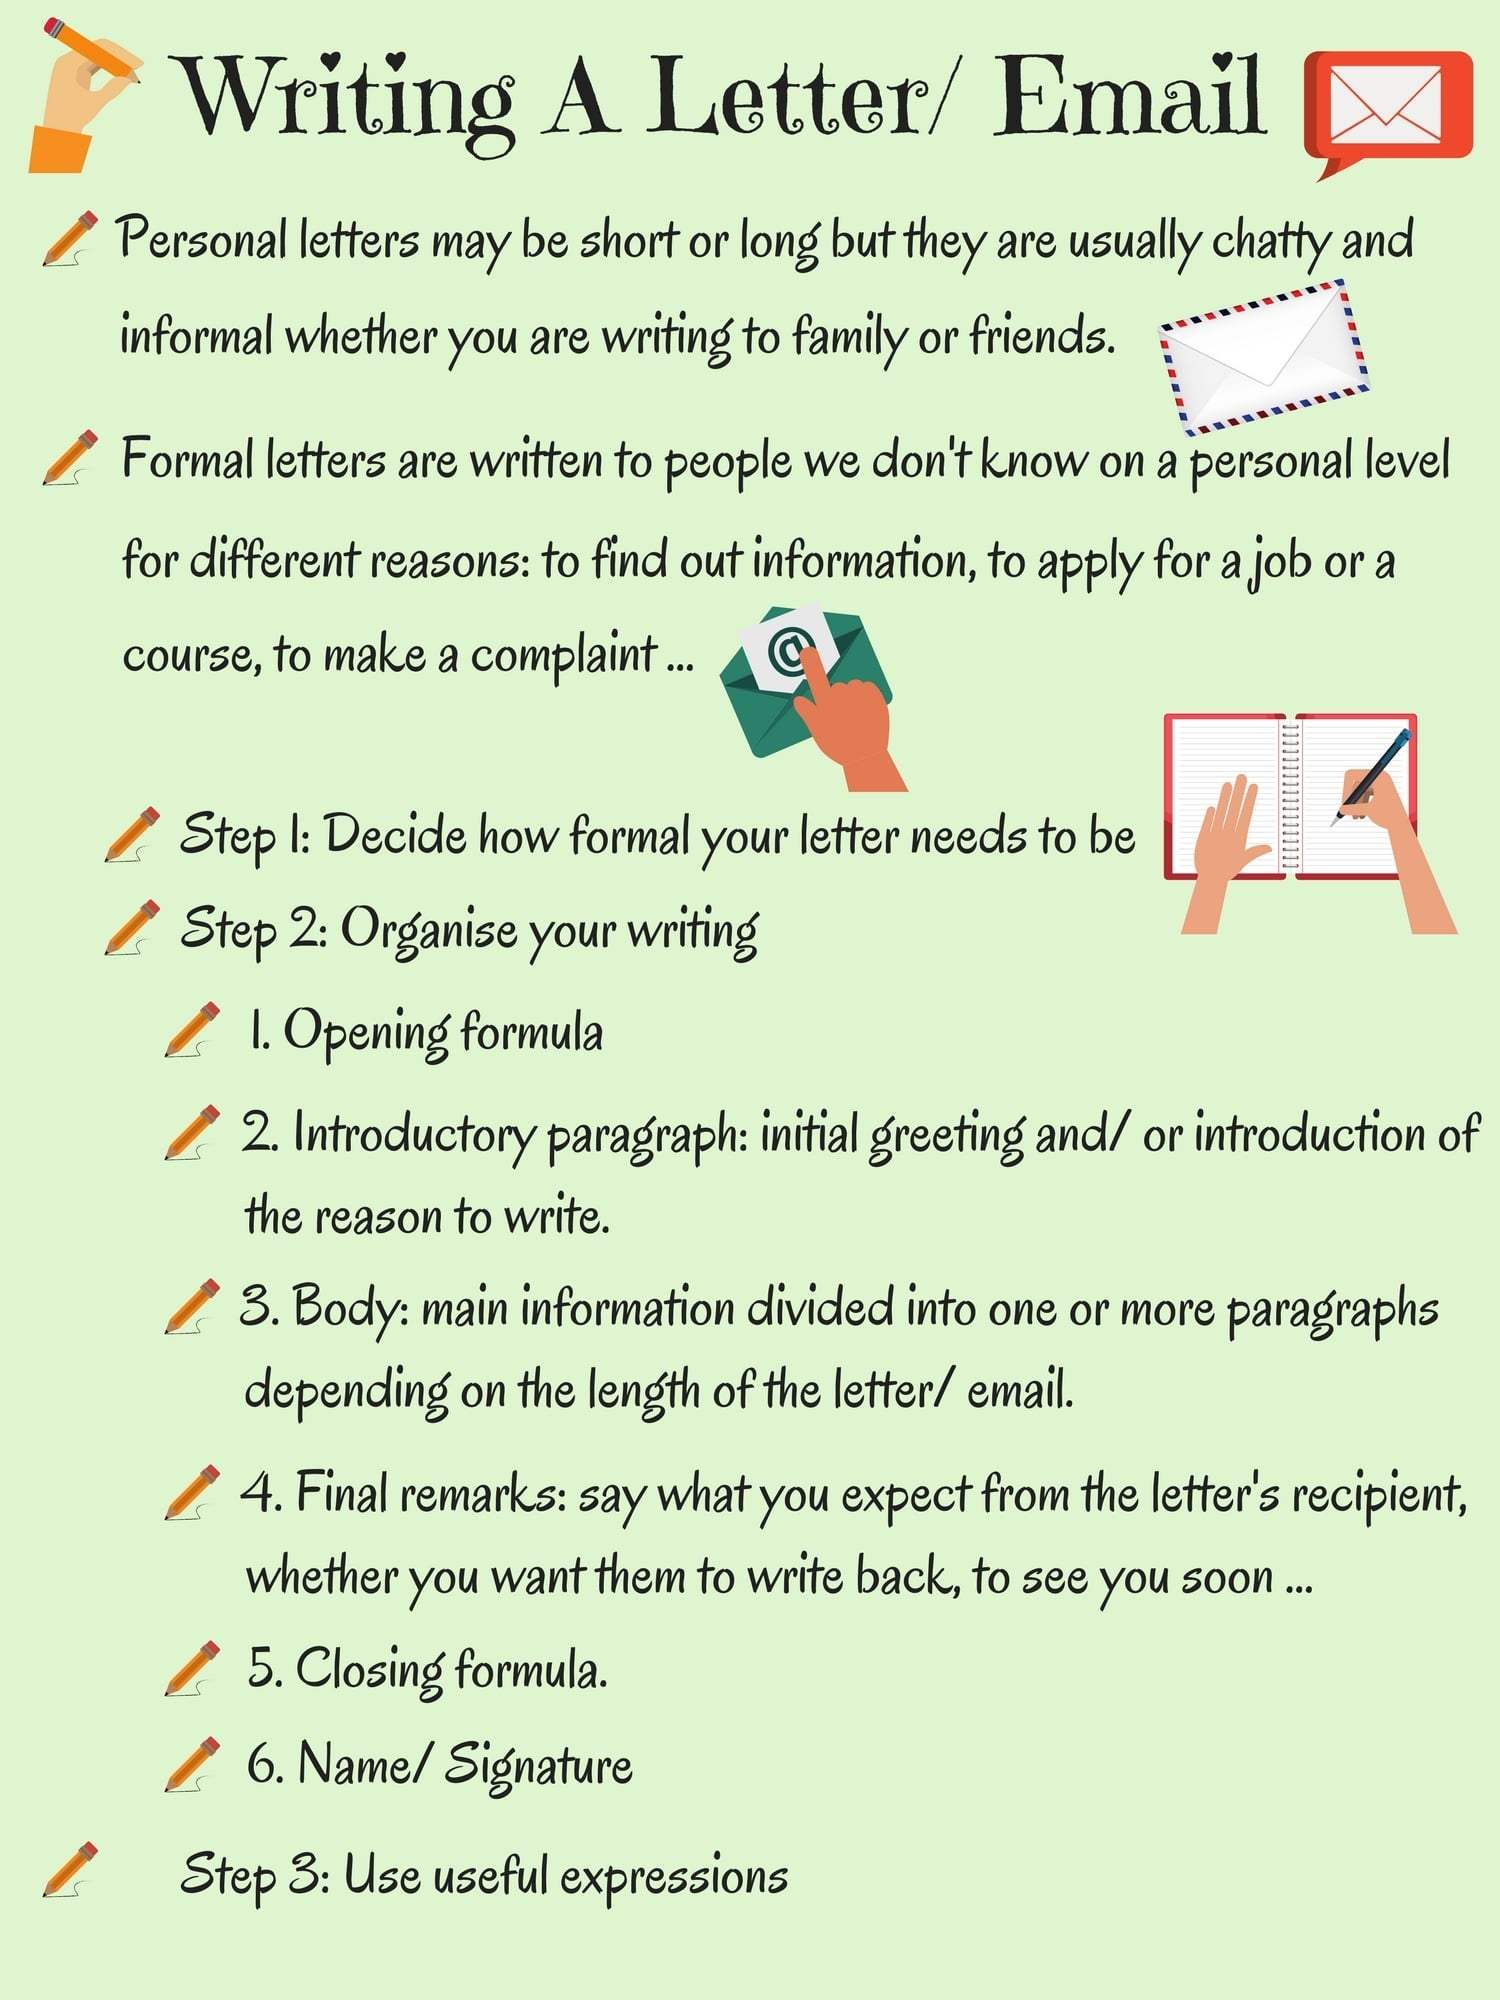 Informal Vs Formal English Writing A Letter Or Email